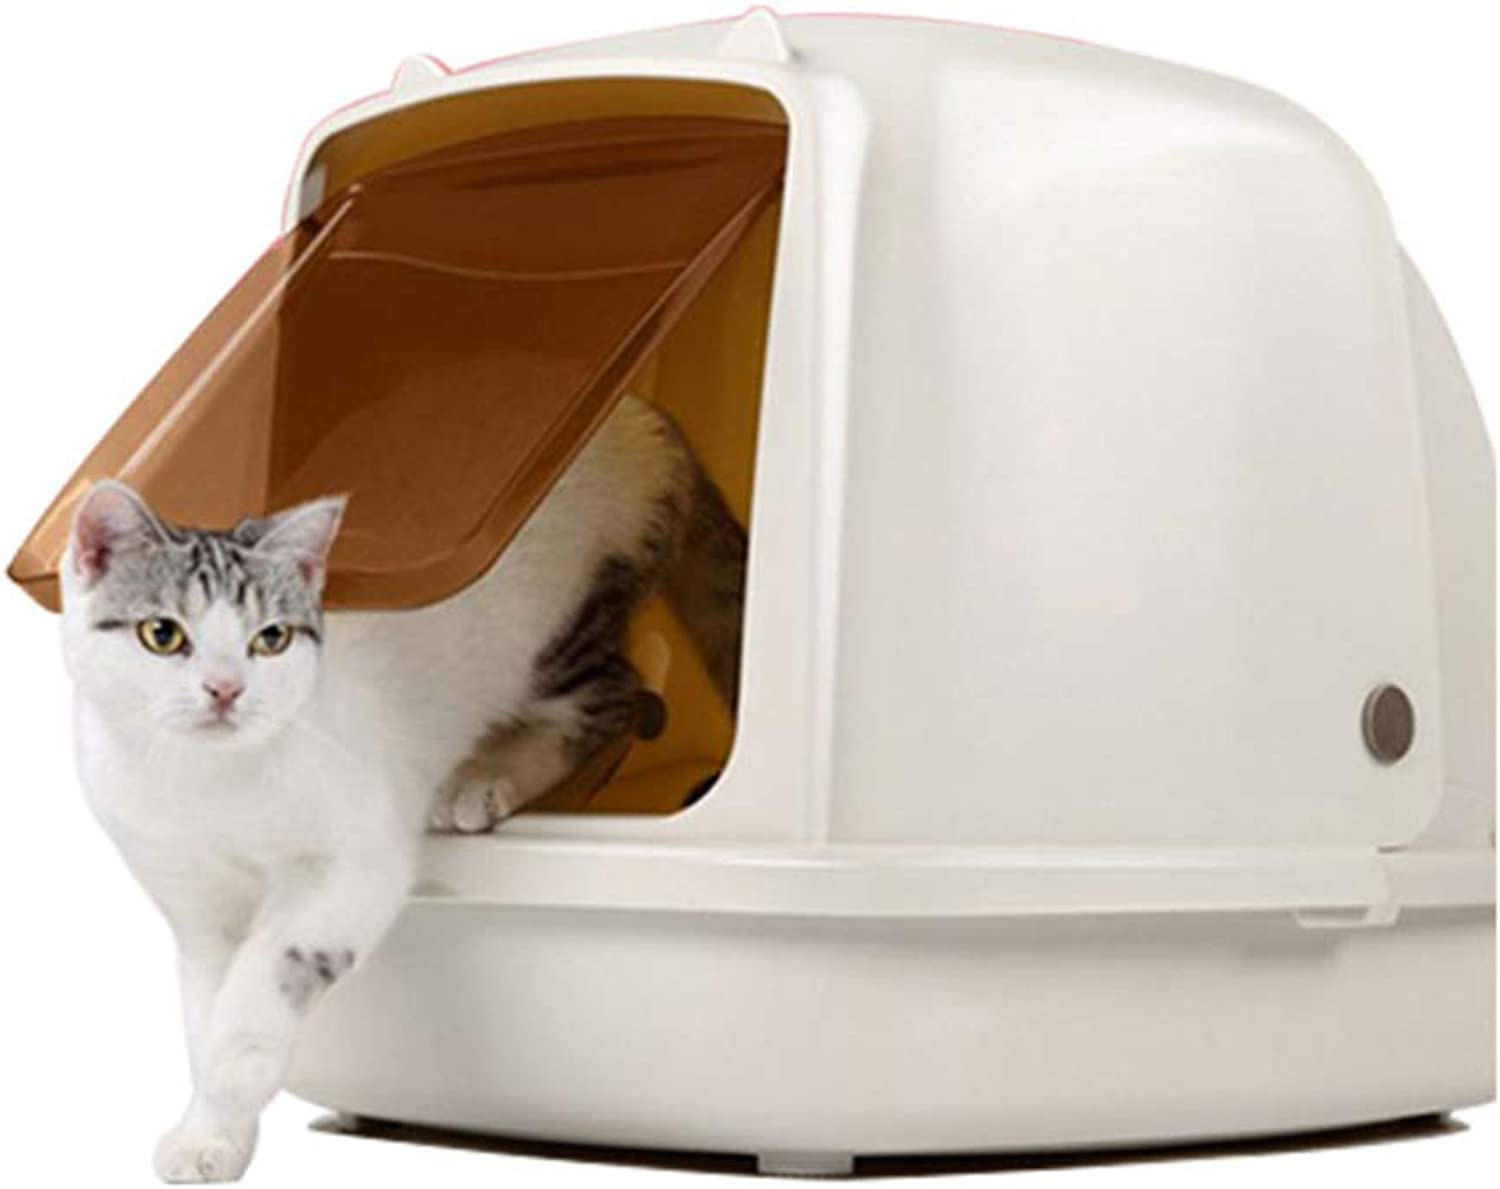 BYCWS Hooded Cat Litter Box,Fully Enclosed Cat Toilet,25x18x19in